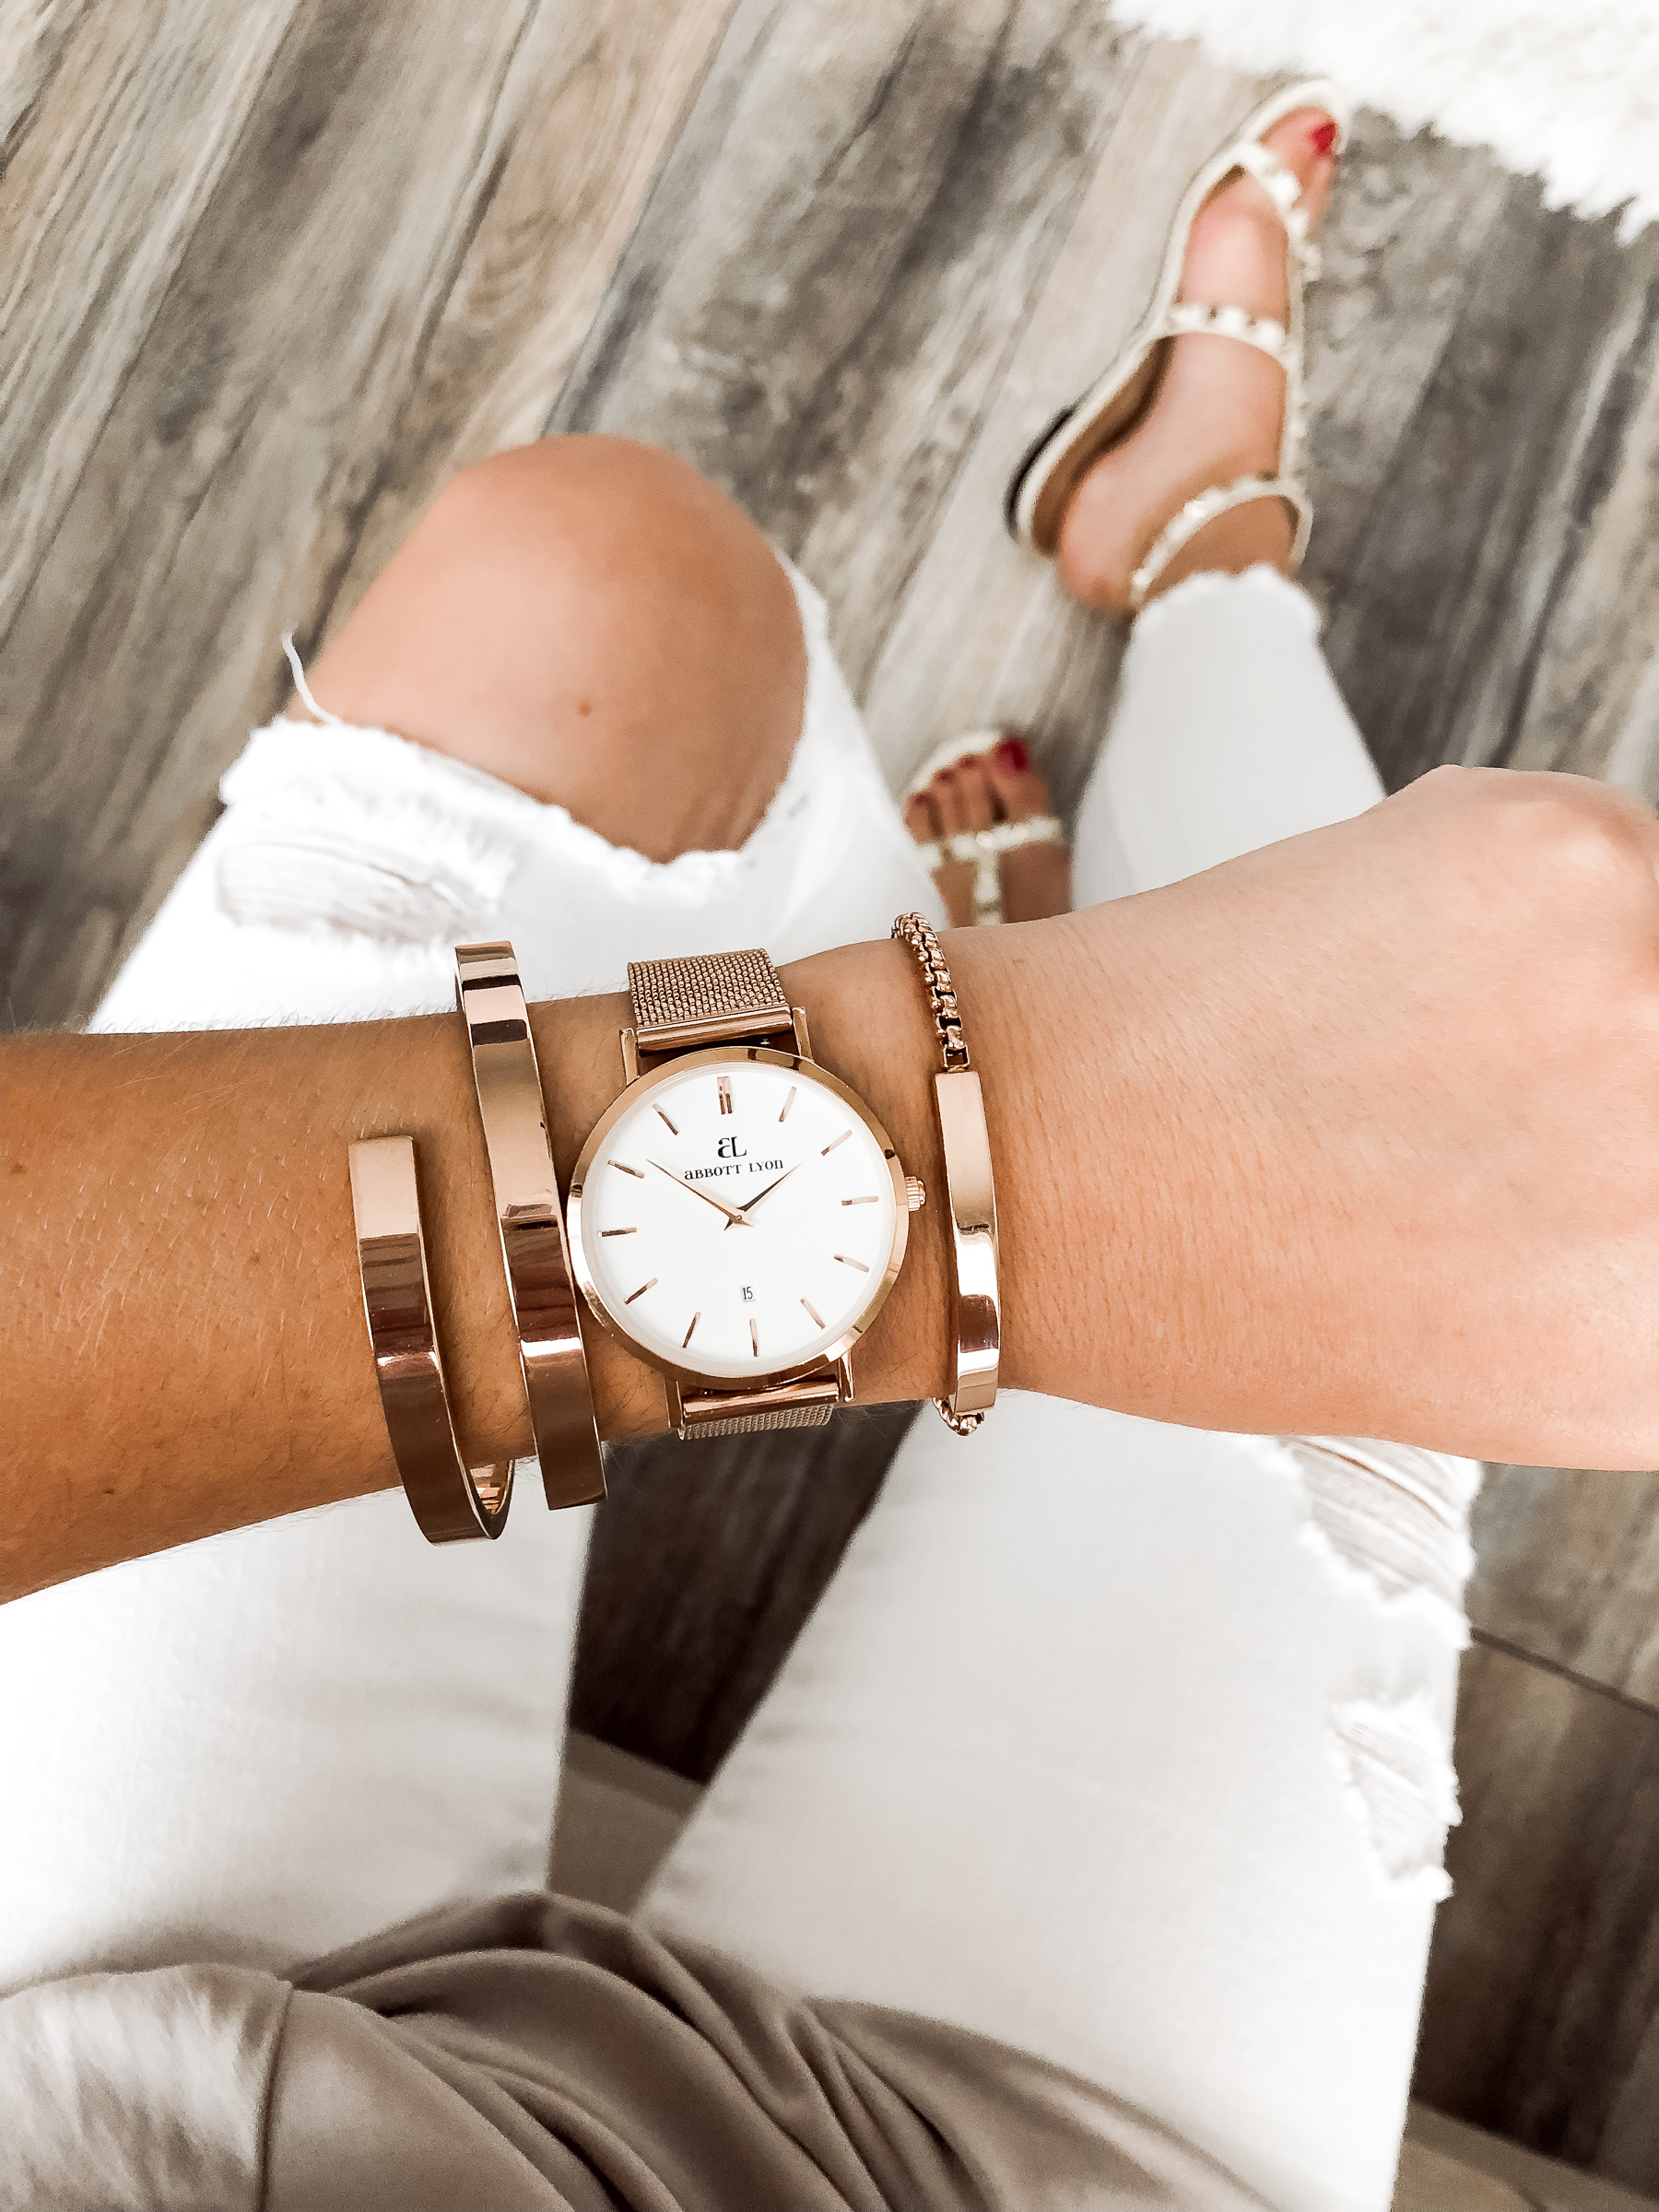 Houston fashion blogger Uptown with Elly Brown wears Abbott Lyon jewelry